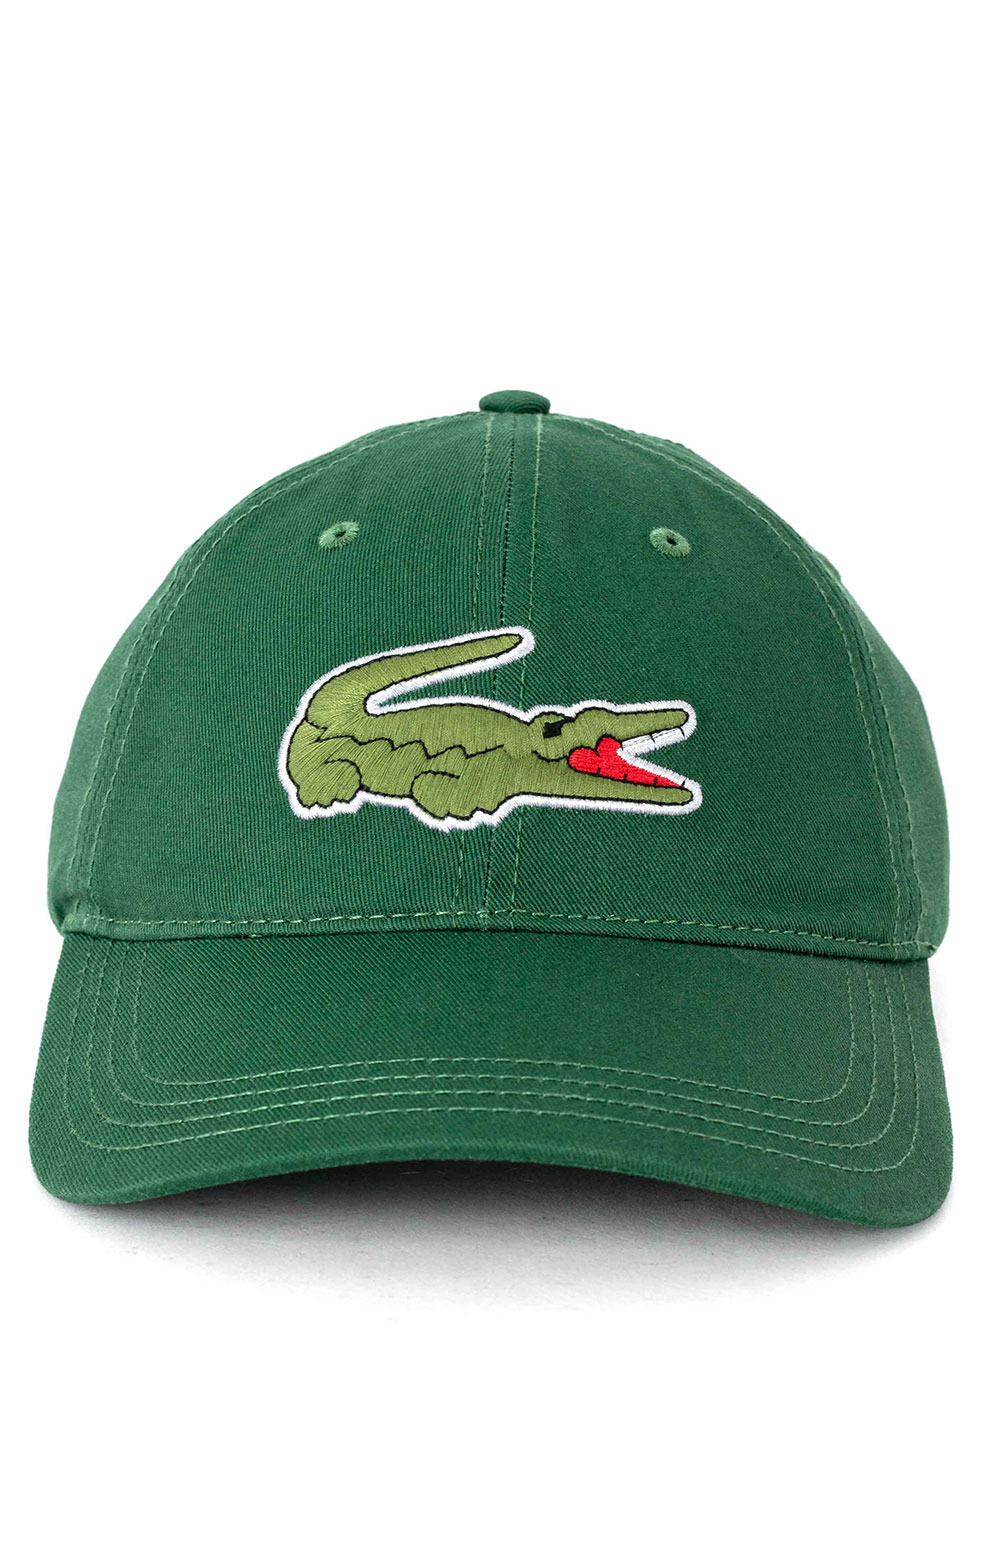 Big Croc Twill Leather Strap Cap - Green  2